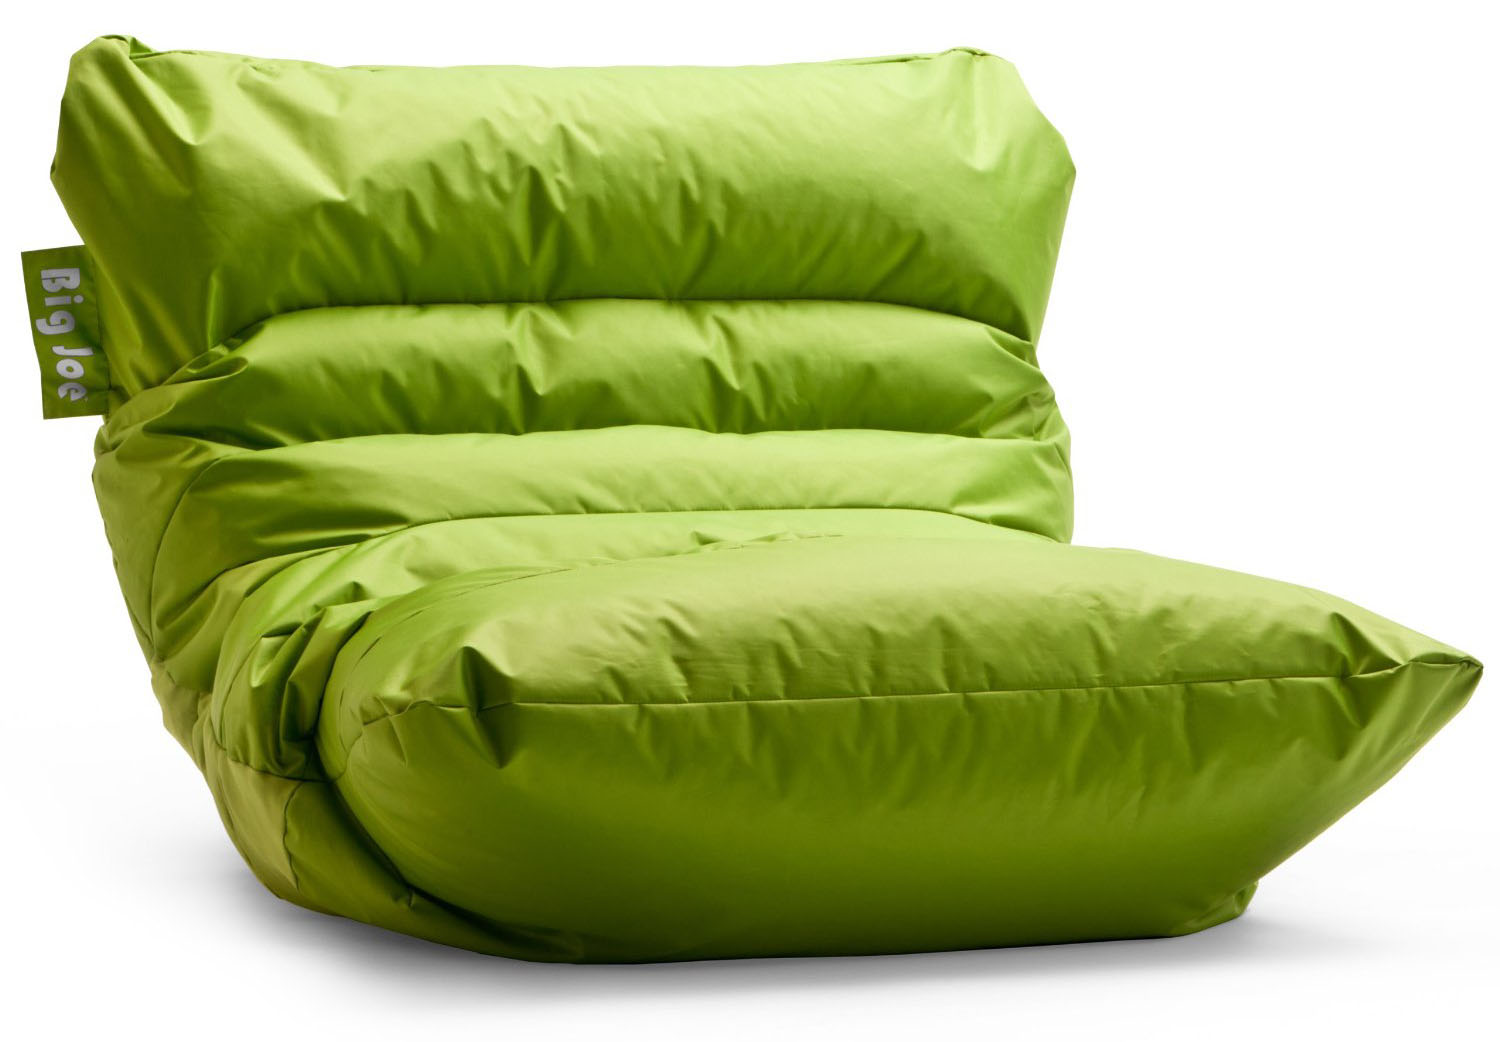 Giant bean bag chairs for adults - Bean Bag Chairs For Adults And Kids